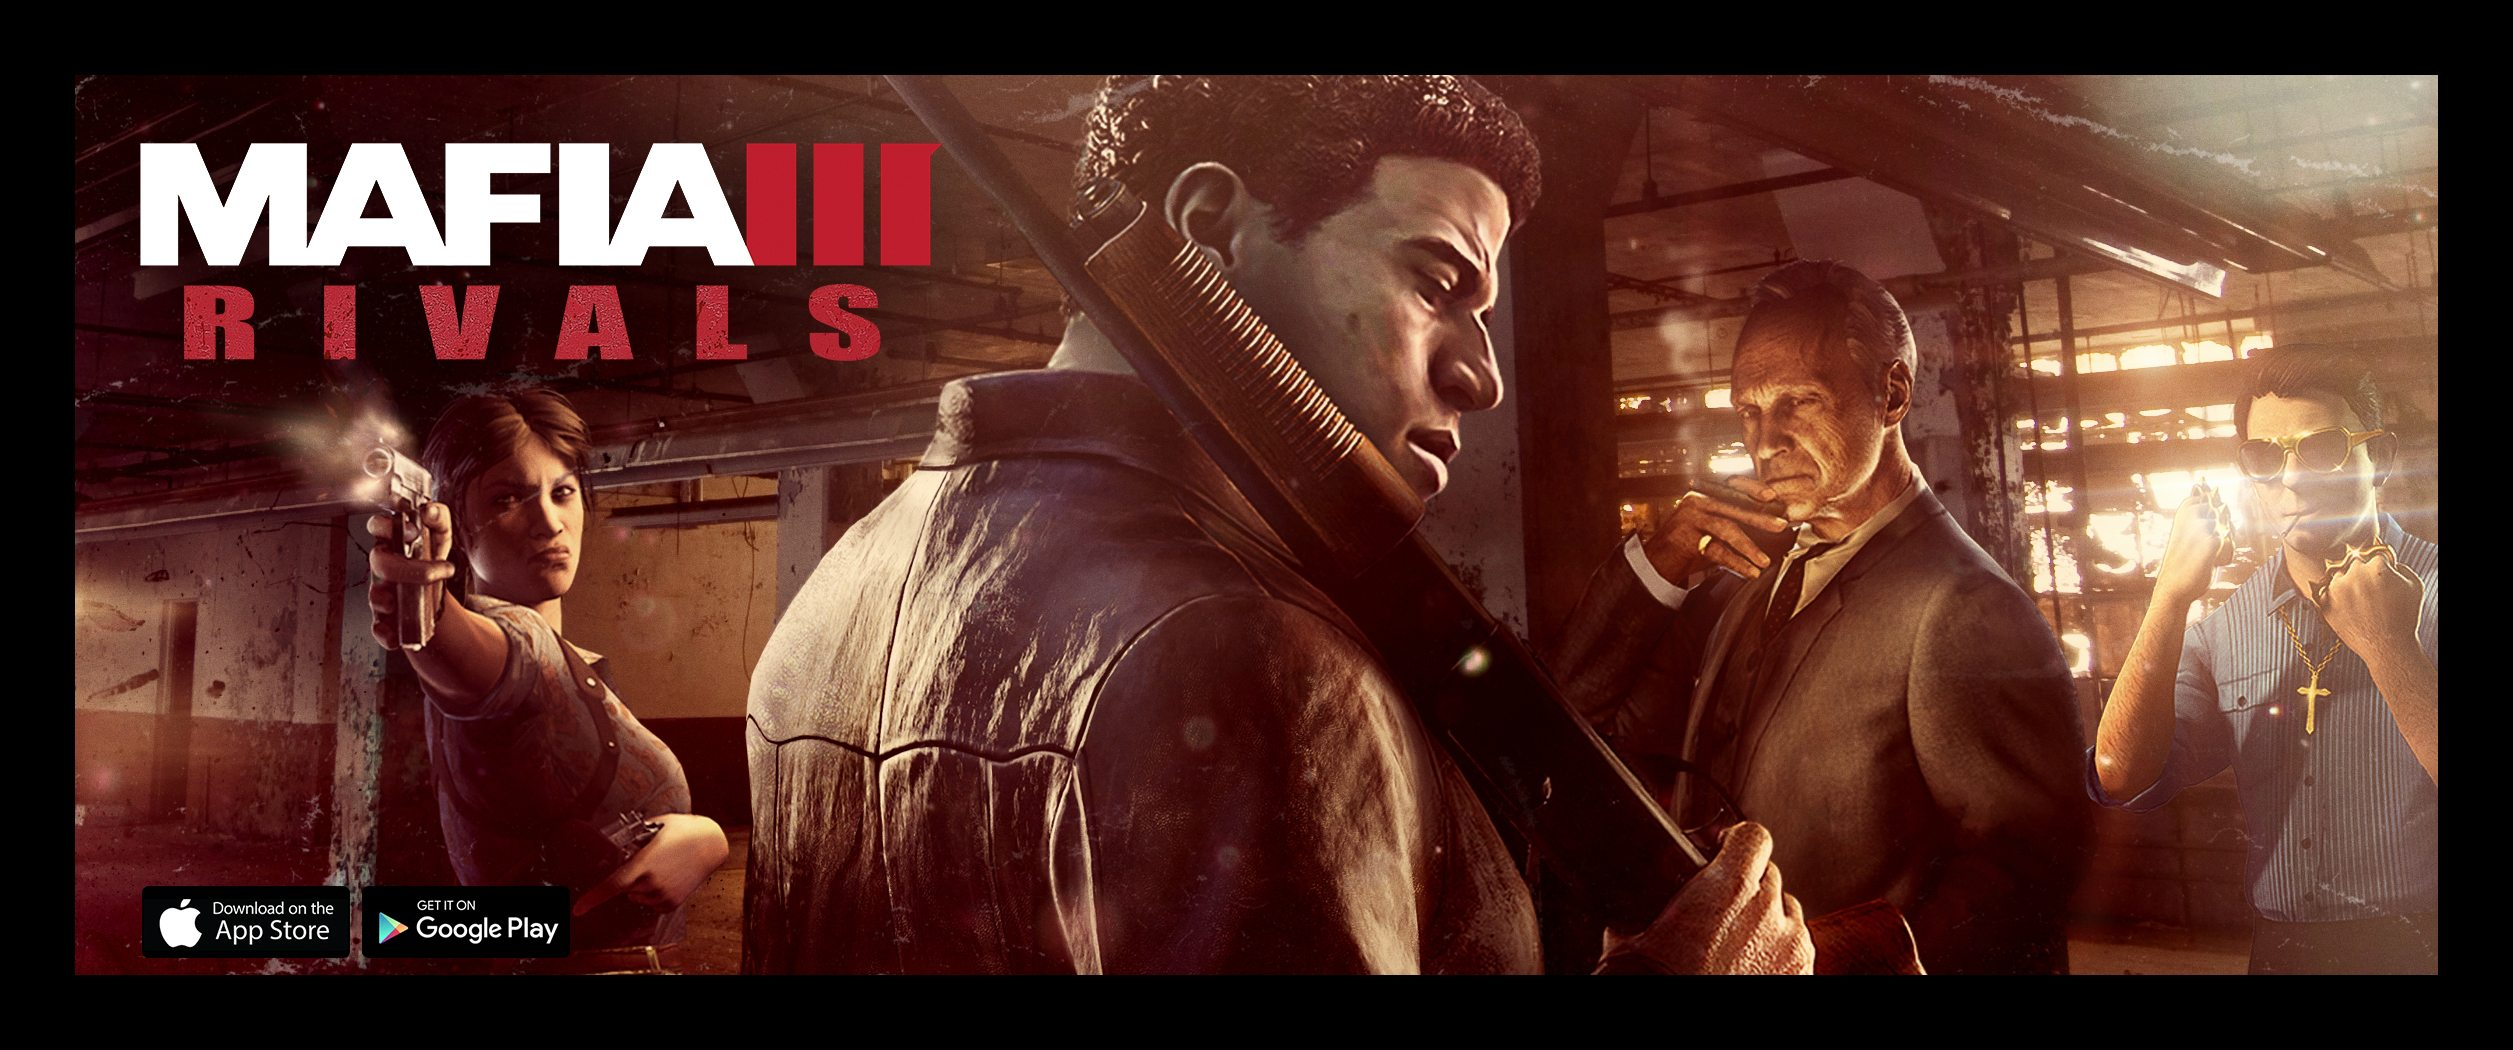 Mafia III: Rivals Now Available for Mobile Devices